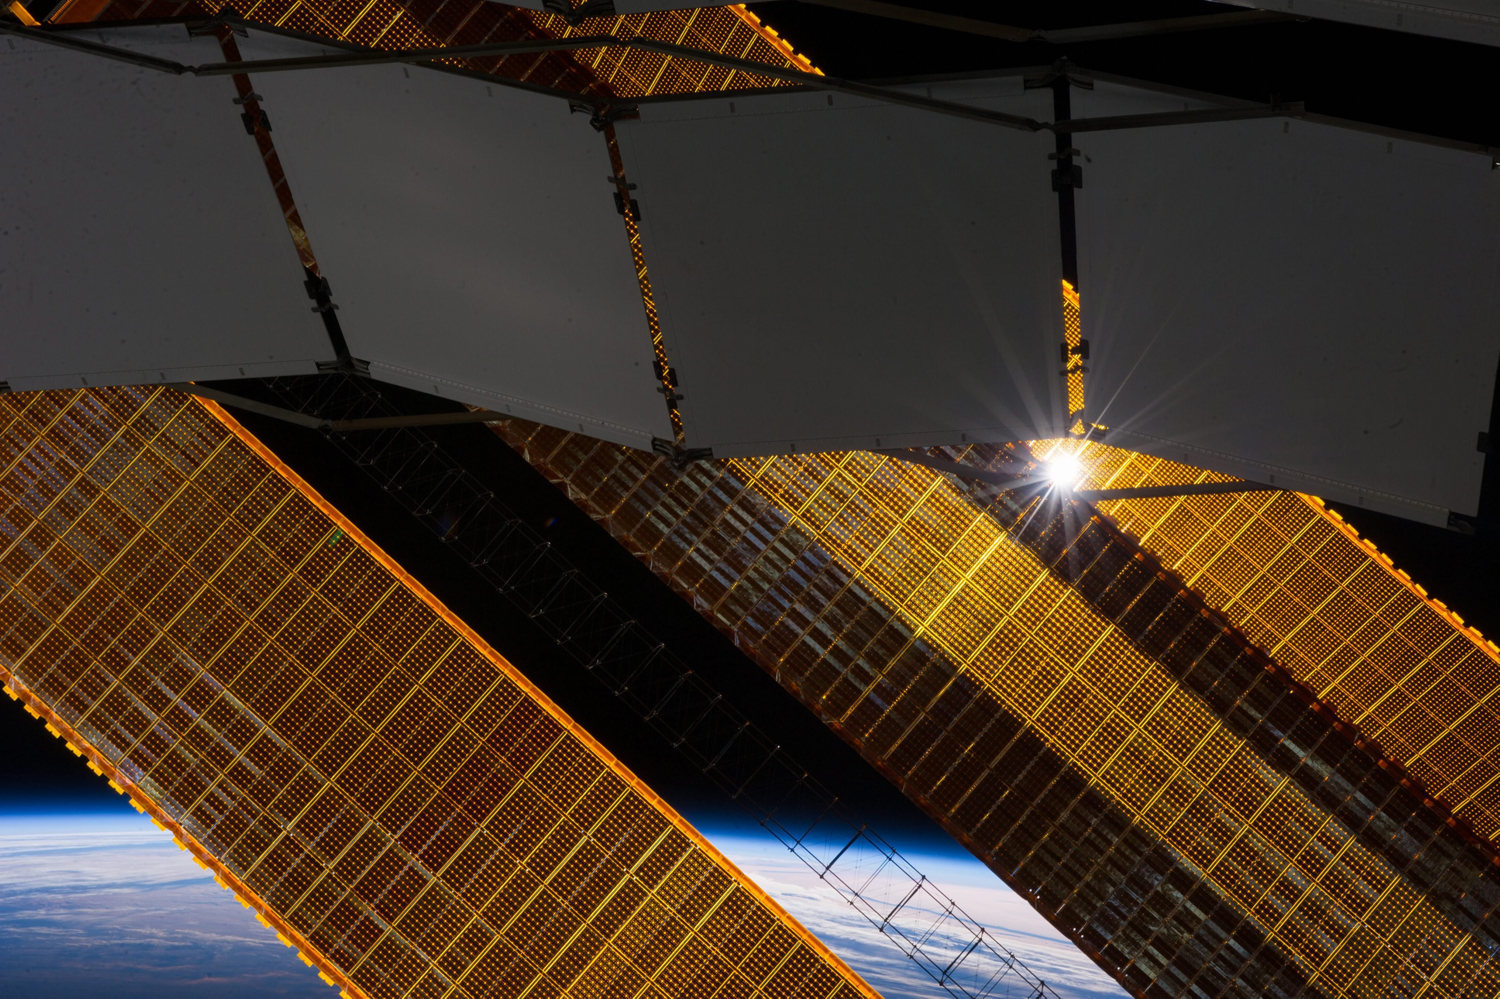 The sun shines through a radiator and a solar array panel on the International Space Station (ISS) in this photograph taken by a crew member on Jan. 2, 2014.